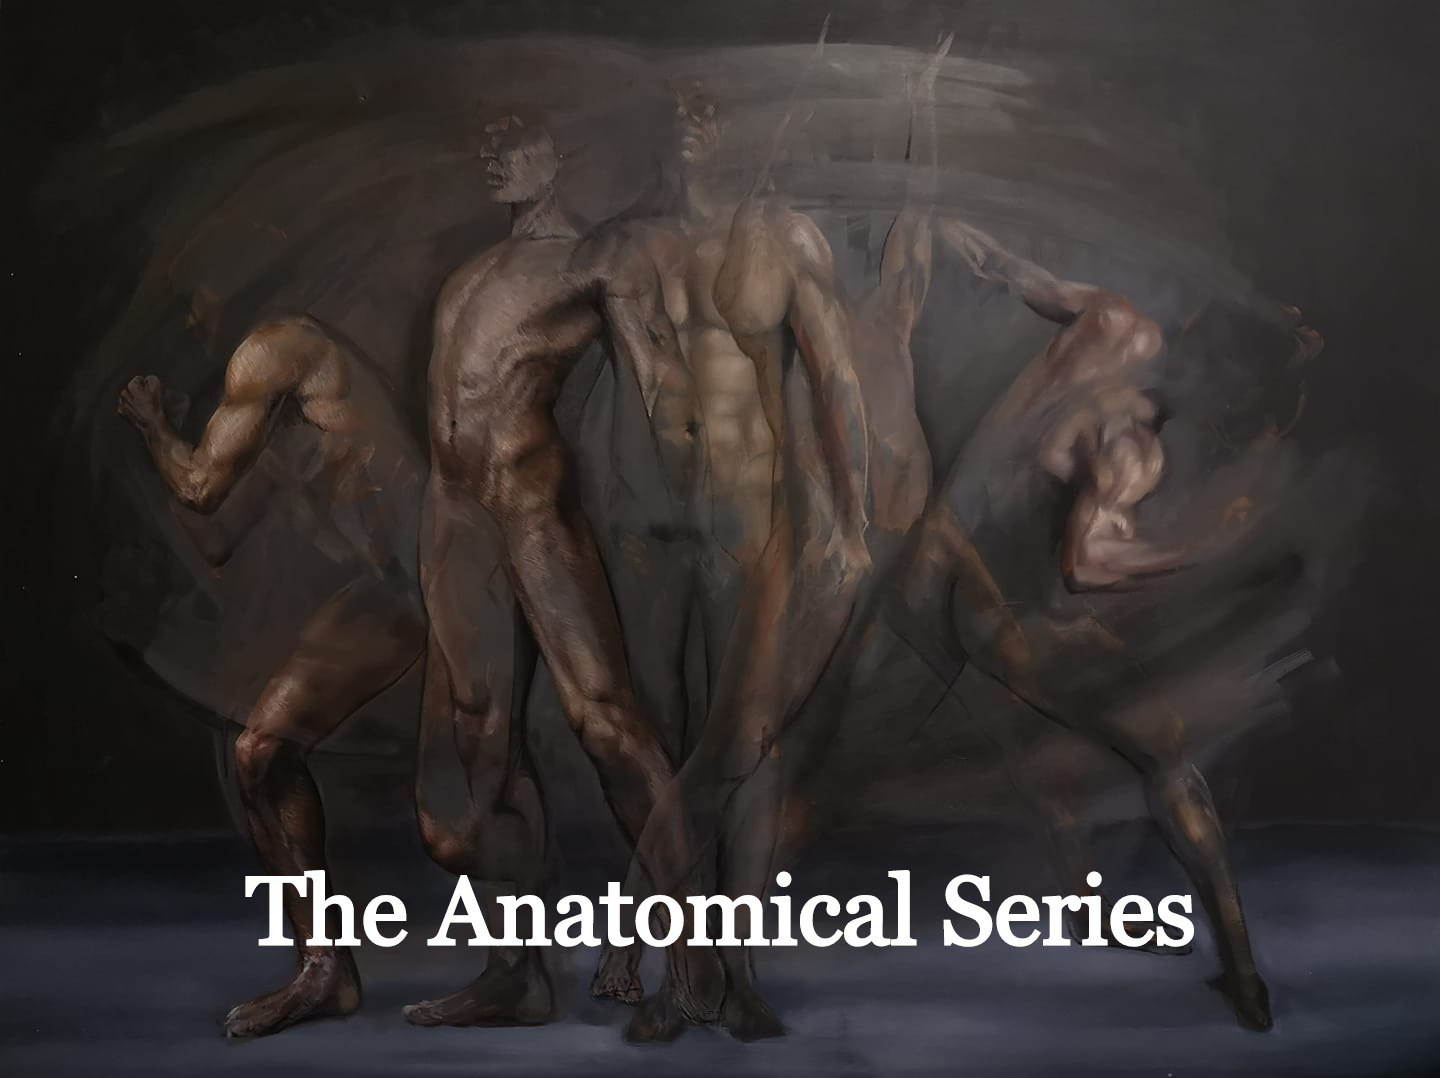 The Anatomical Series